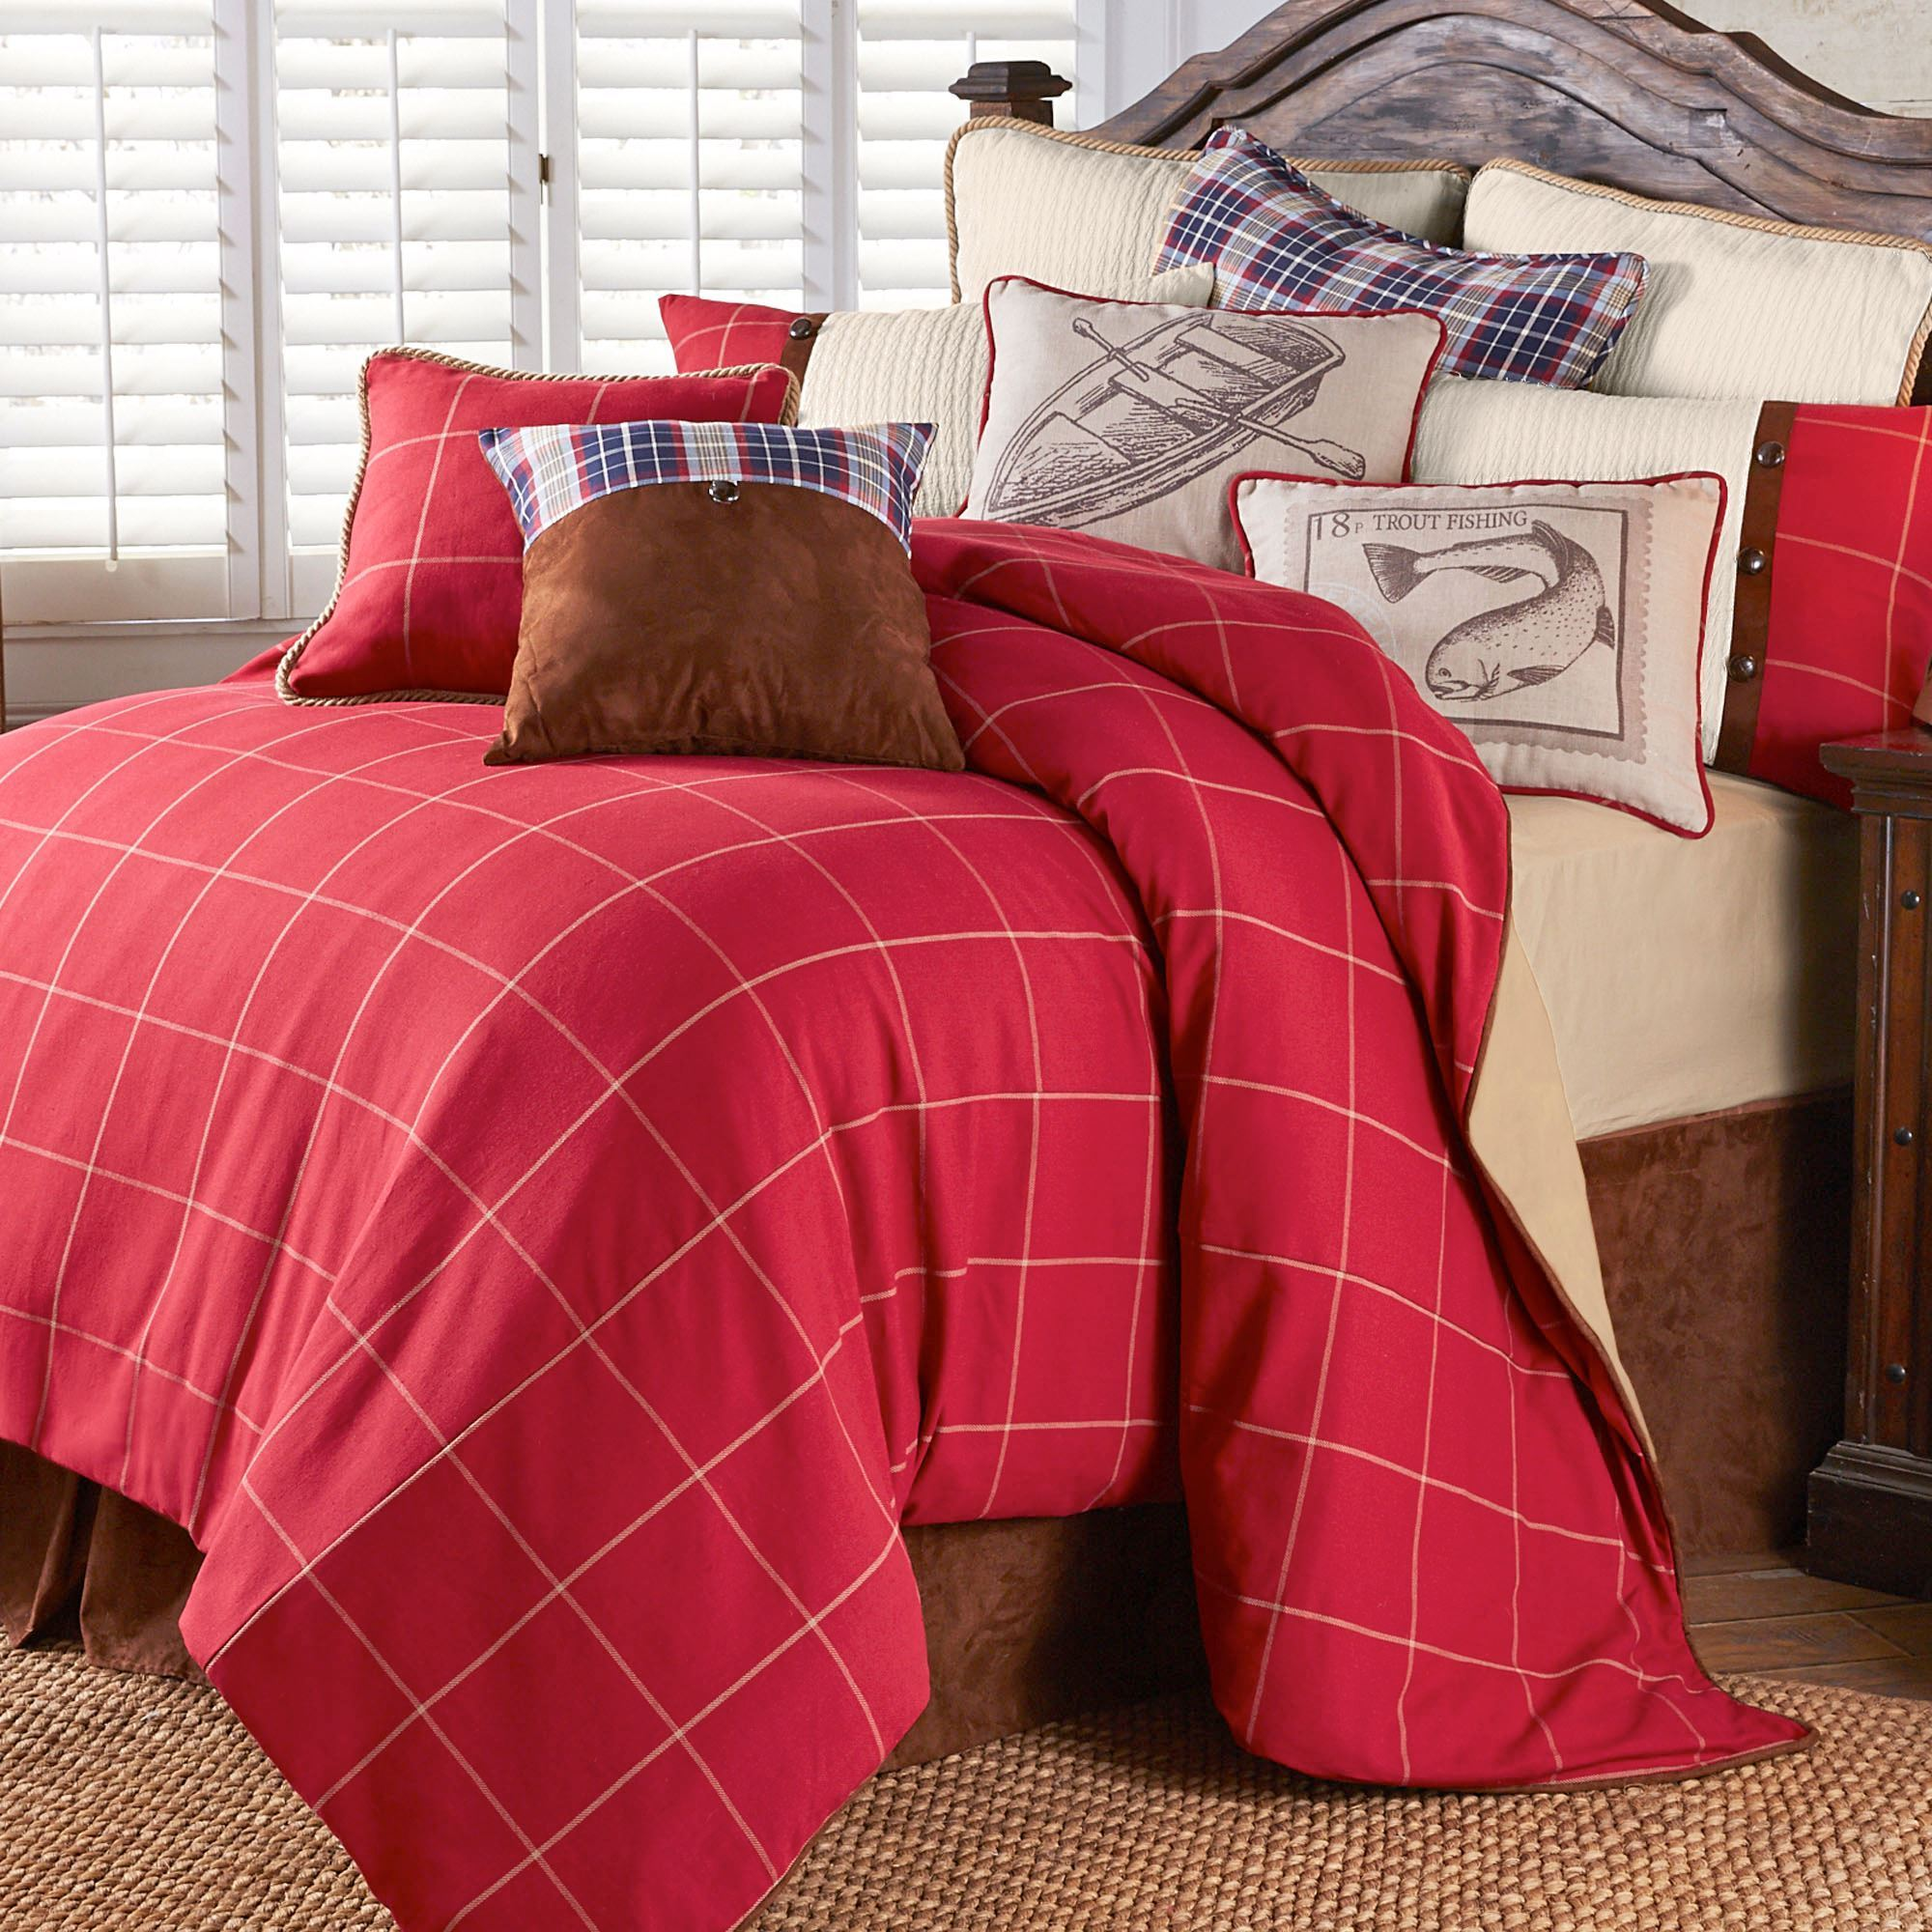 kelso next catherine red in set duvet lansfield day pin delivery plaid cover